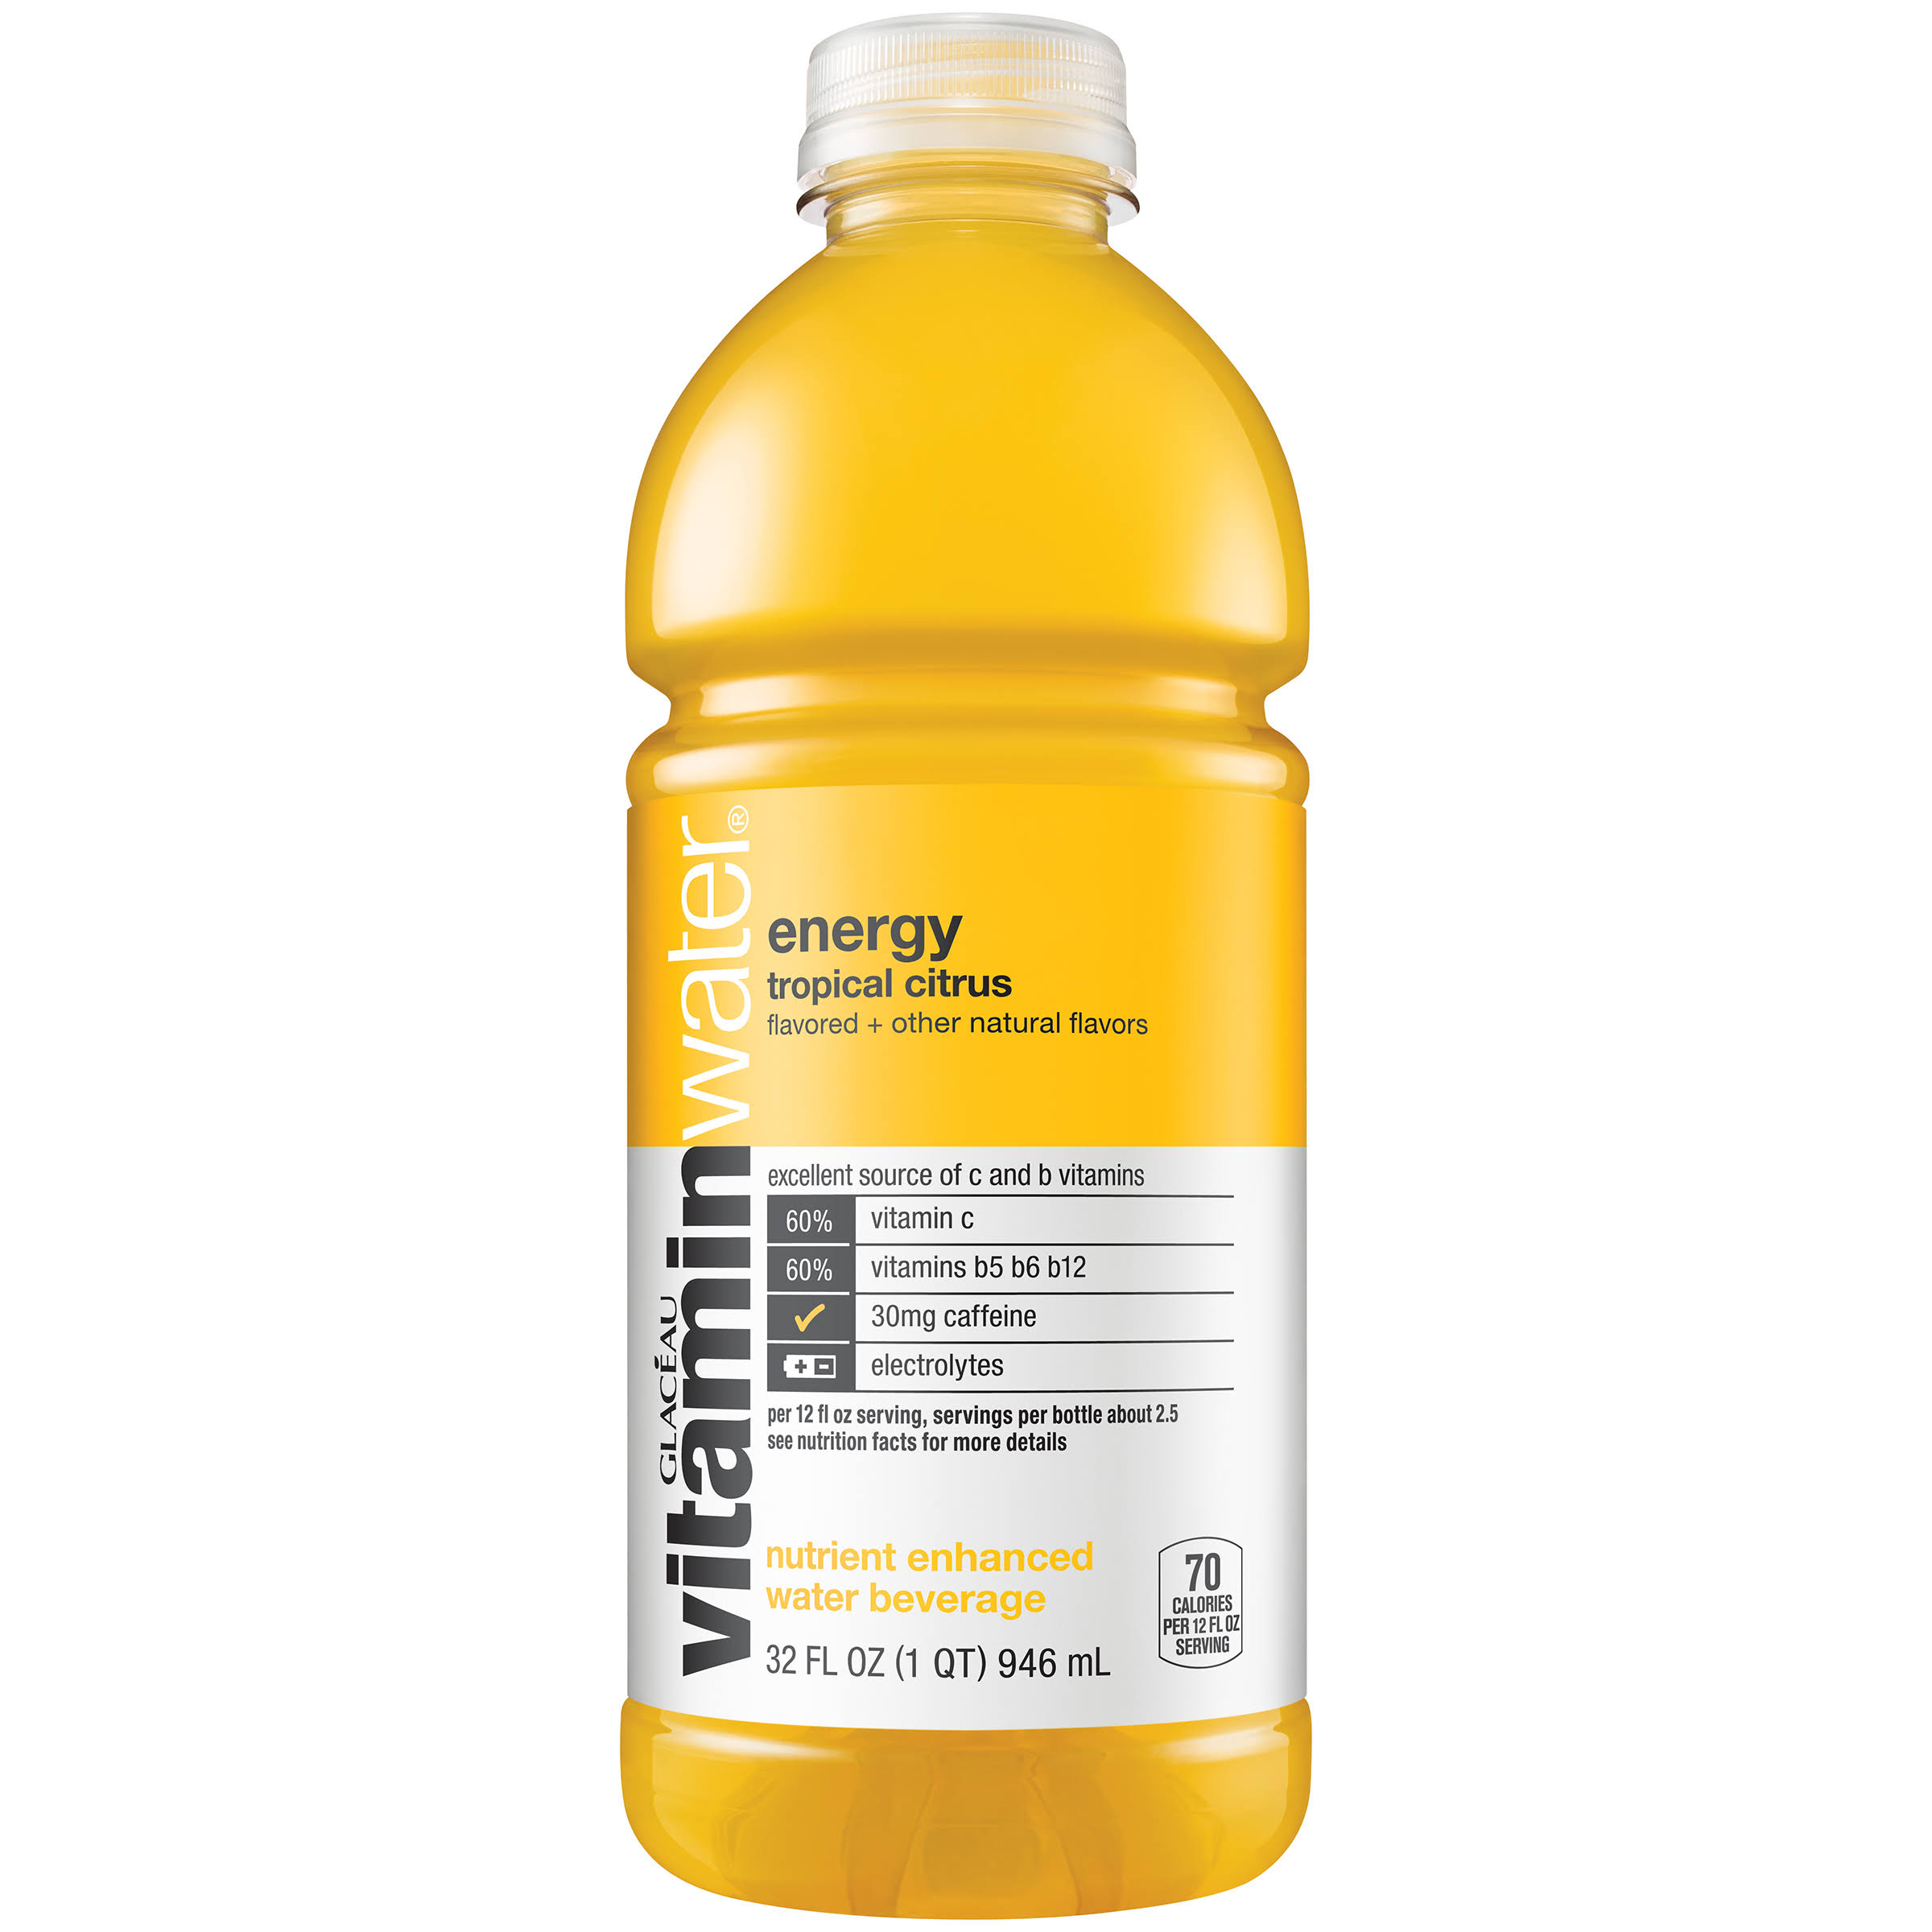 Vitaminwater Energy Tropical Citrus Nutrient Enhanced Water